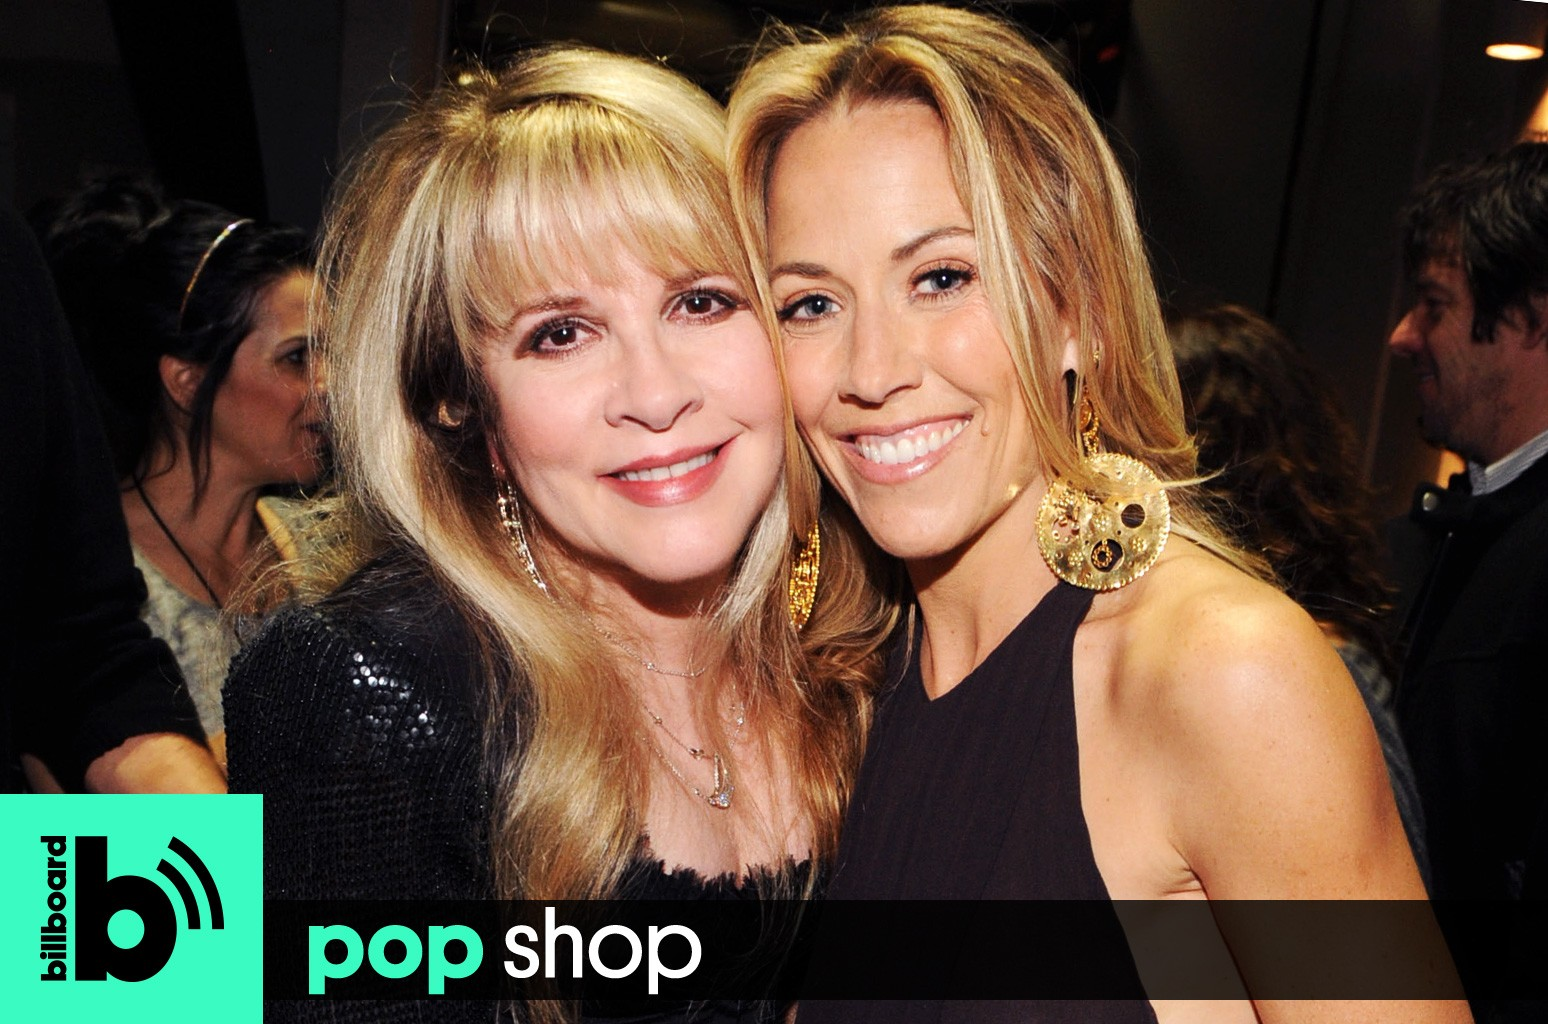 Pop Shop Podcast featuring: Stevie Nicks and Sheryl Crow